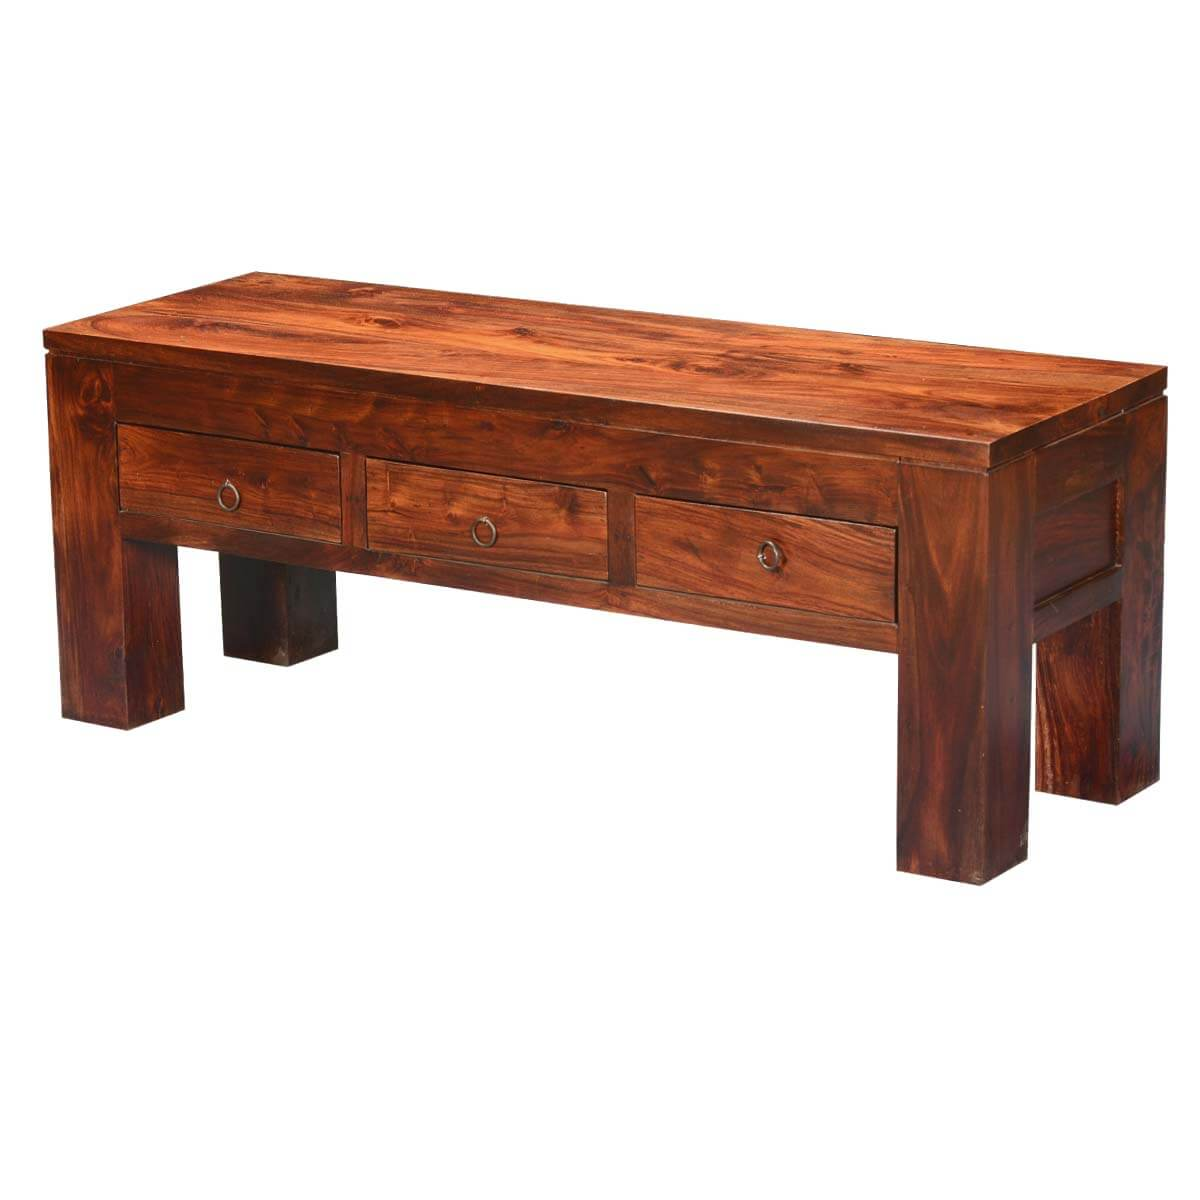 Mission modern solid wood hidden drawers coffee table mission modern solid indian rosewood hidden drawers coffee table geotapseo Choice Image